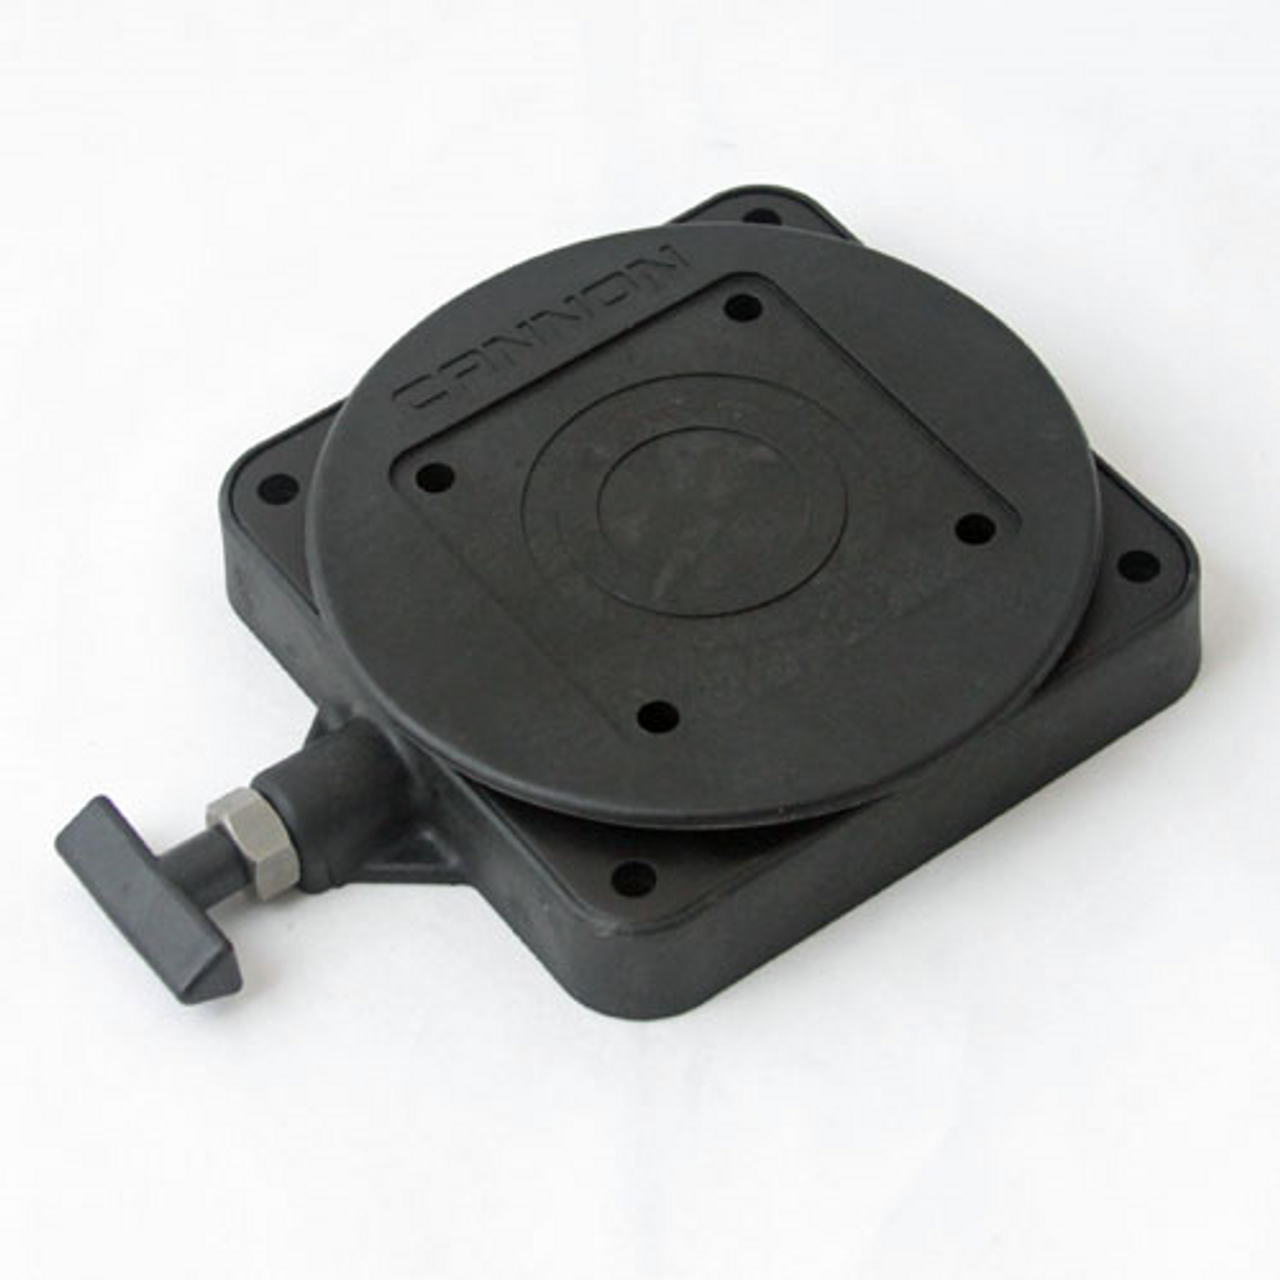 Cannon downrigger low profile mounting plate base UNI-TROLL 2207002 BRAND NEW